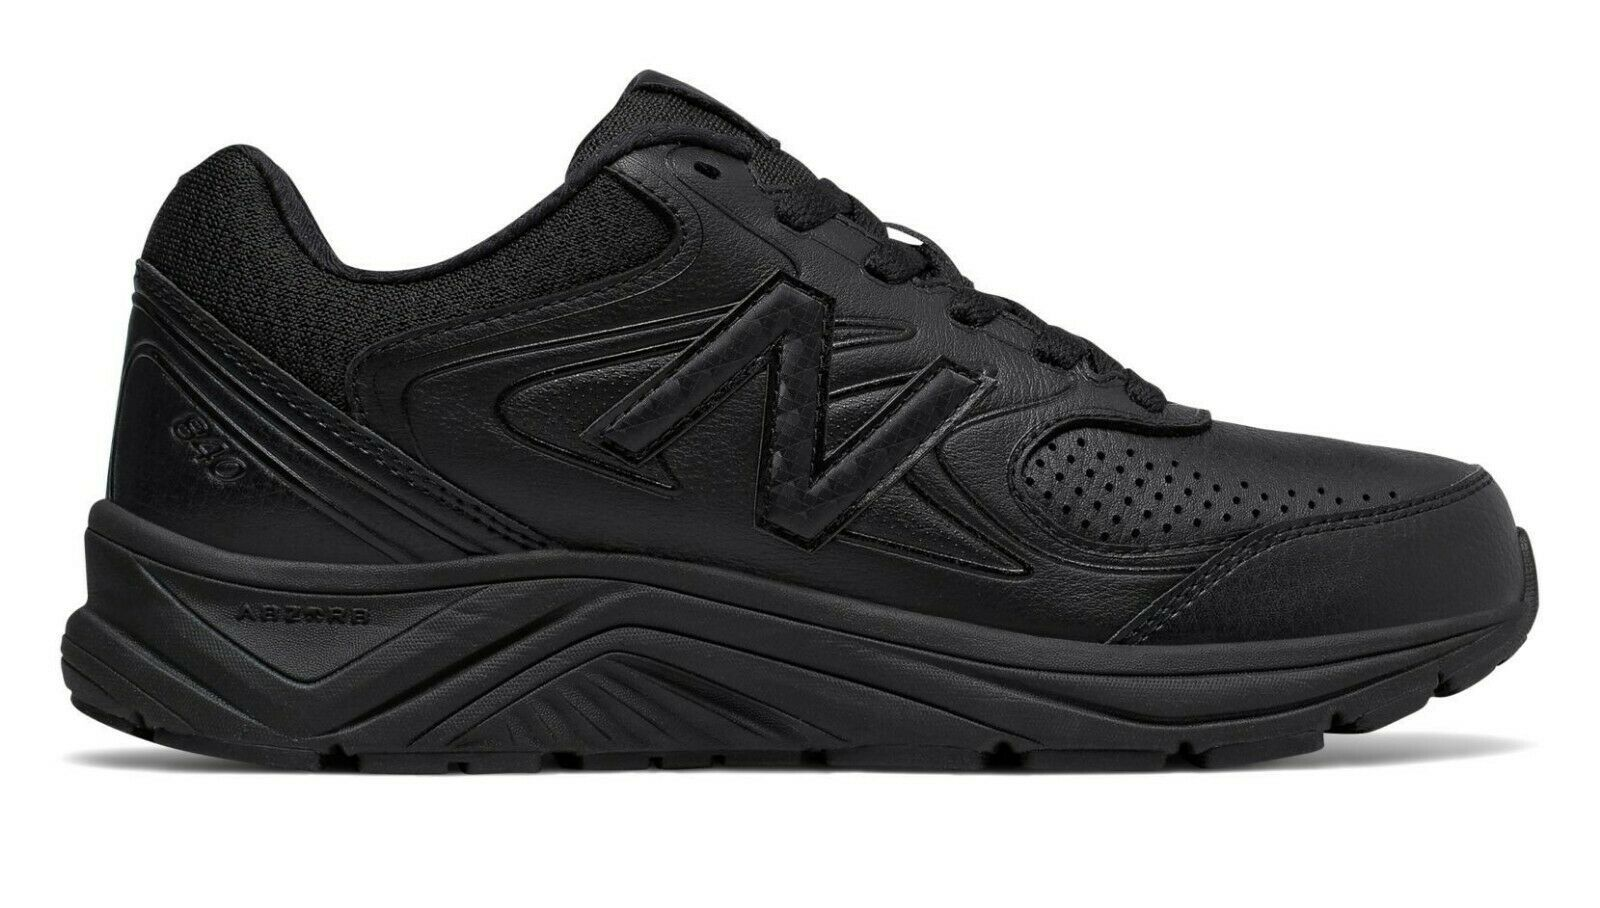 New Balance 840v2 Womens Black Wide Running Walking Sneakers Shoes Size WW840BK2 - $149.99